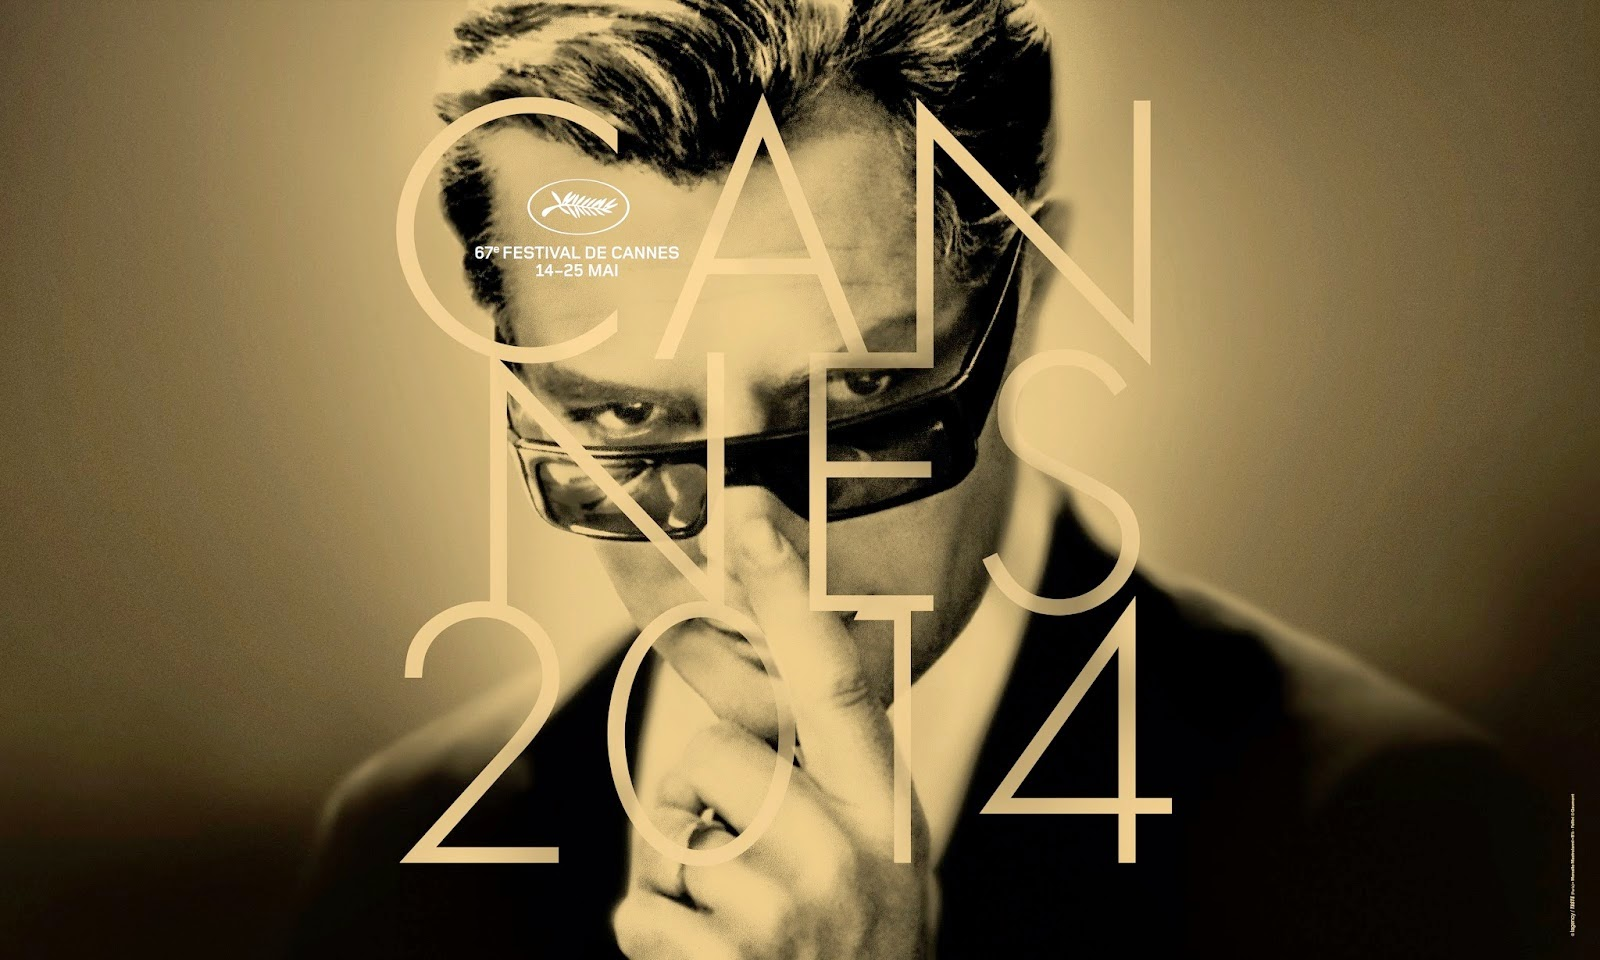 EYES WIDE CIAK! AL FESTIVAL DI CANNES 2014